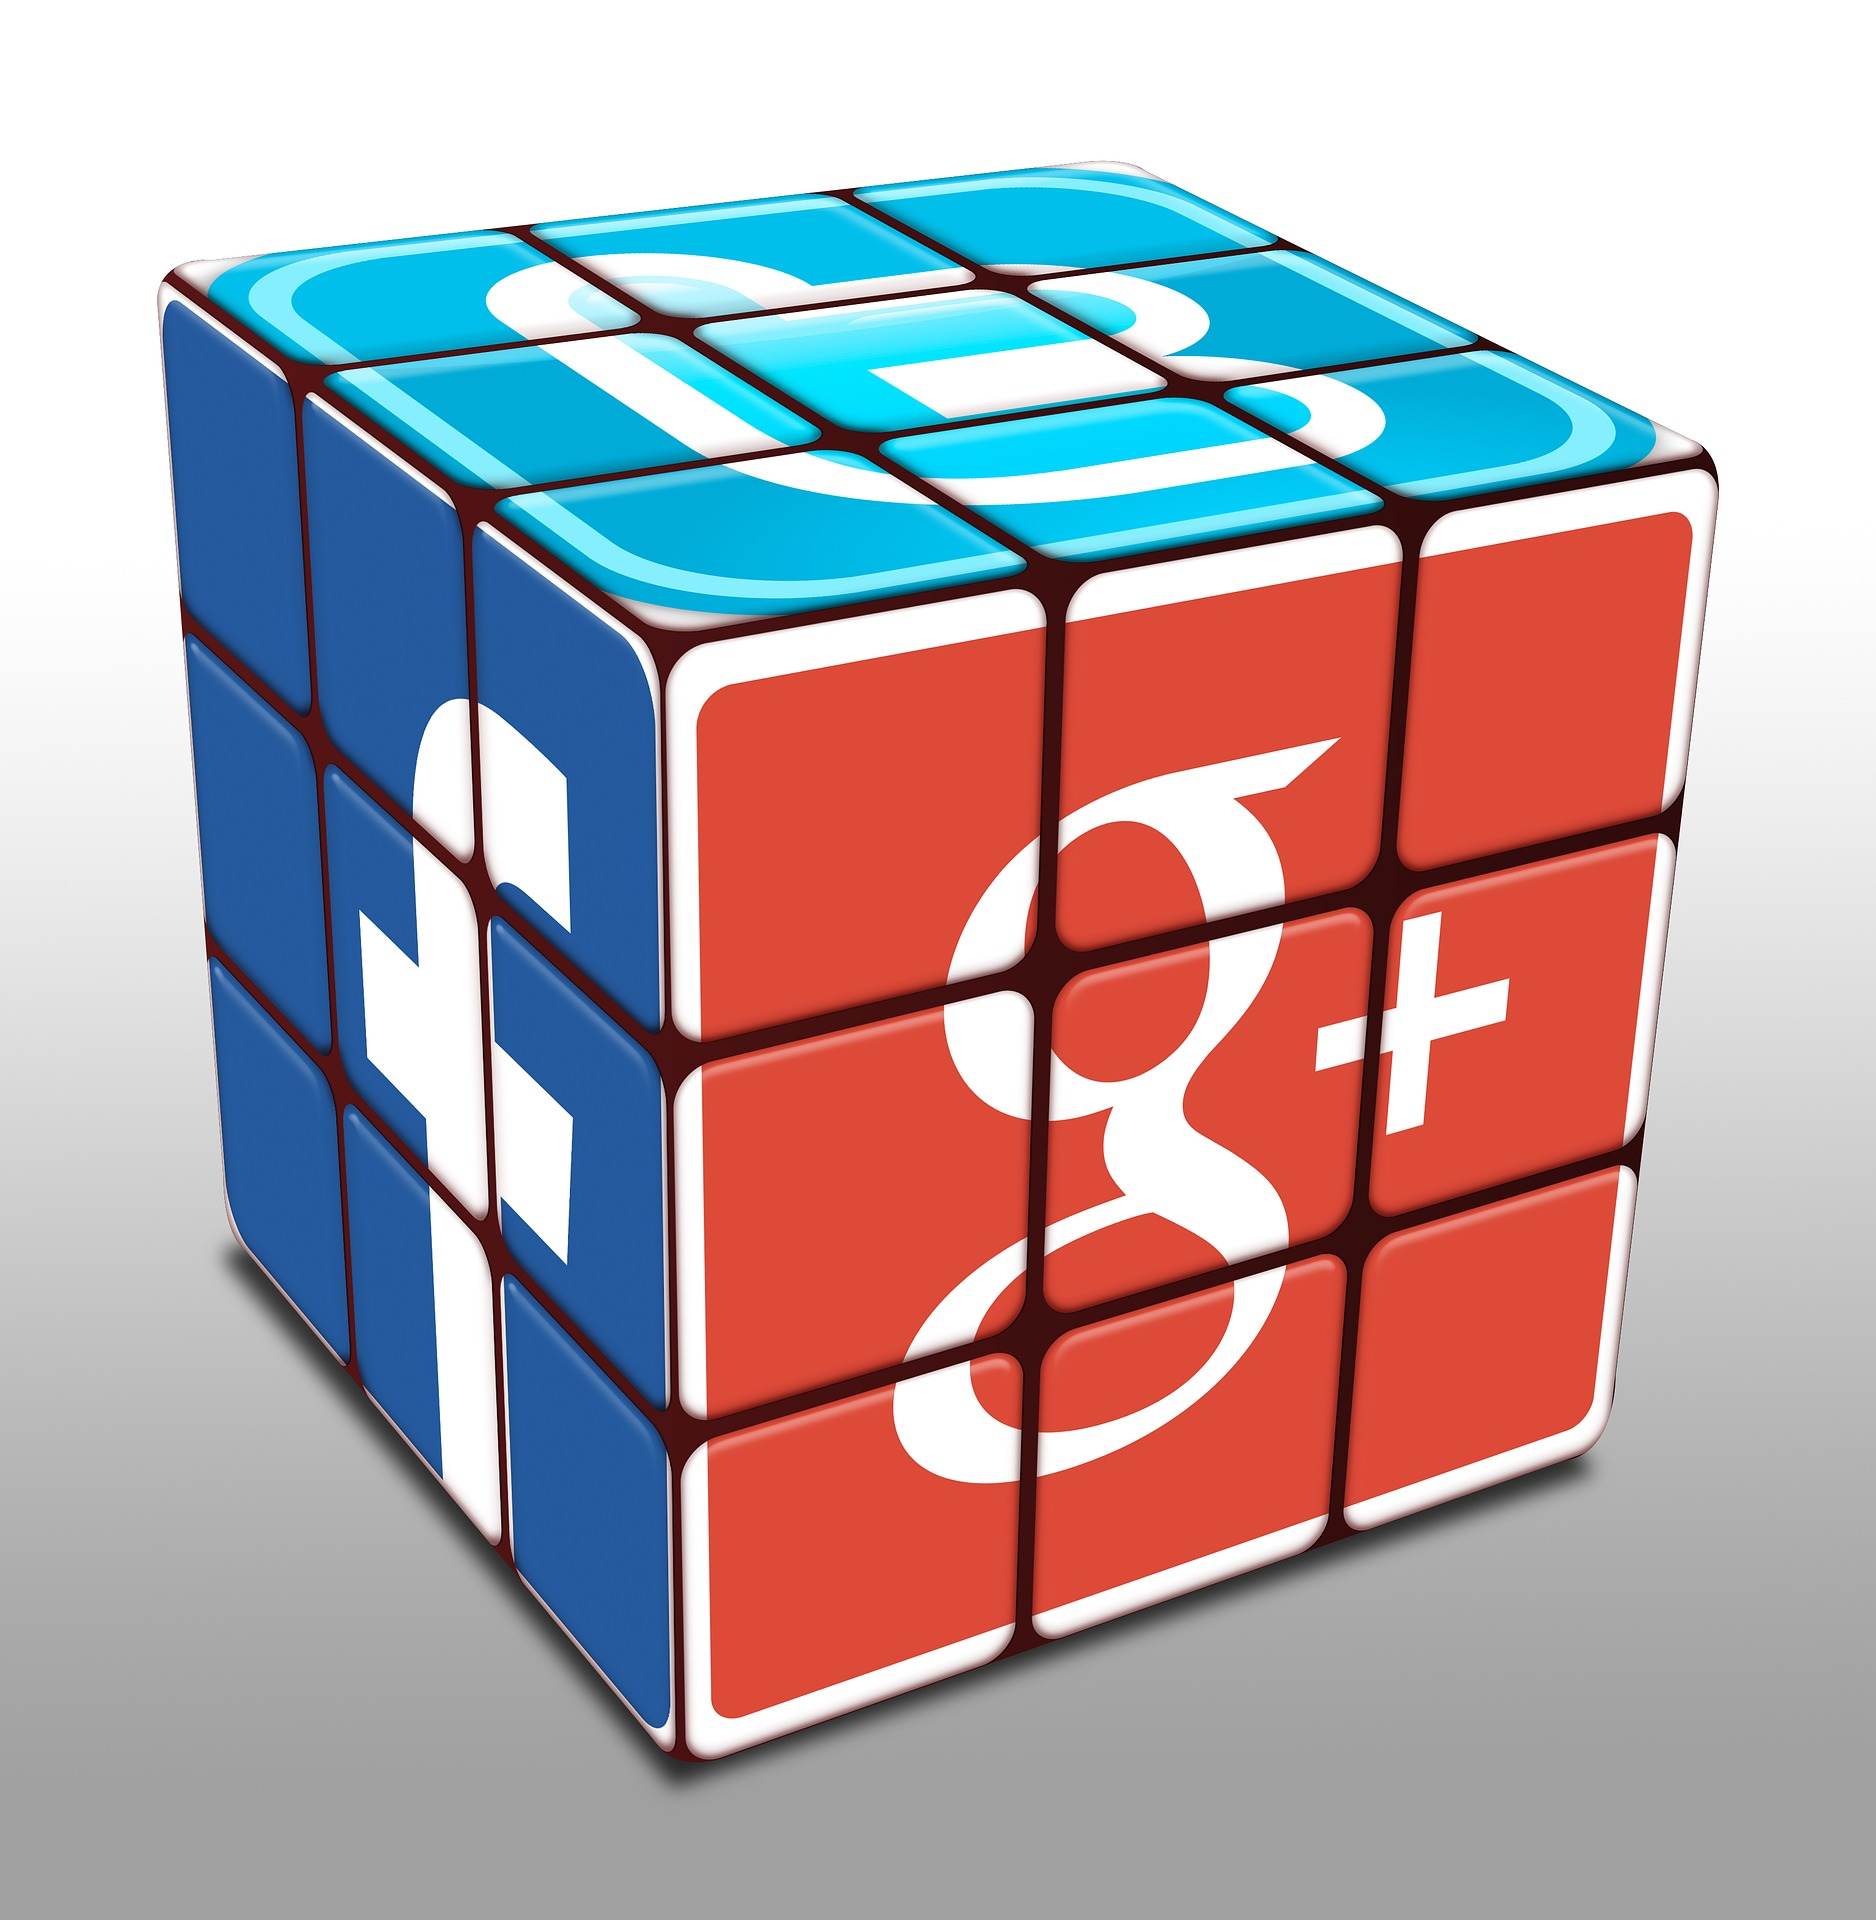 Figuring out which social media platform best serves your business can be a puzzle